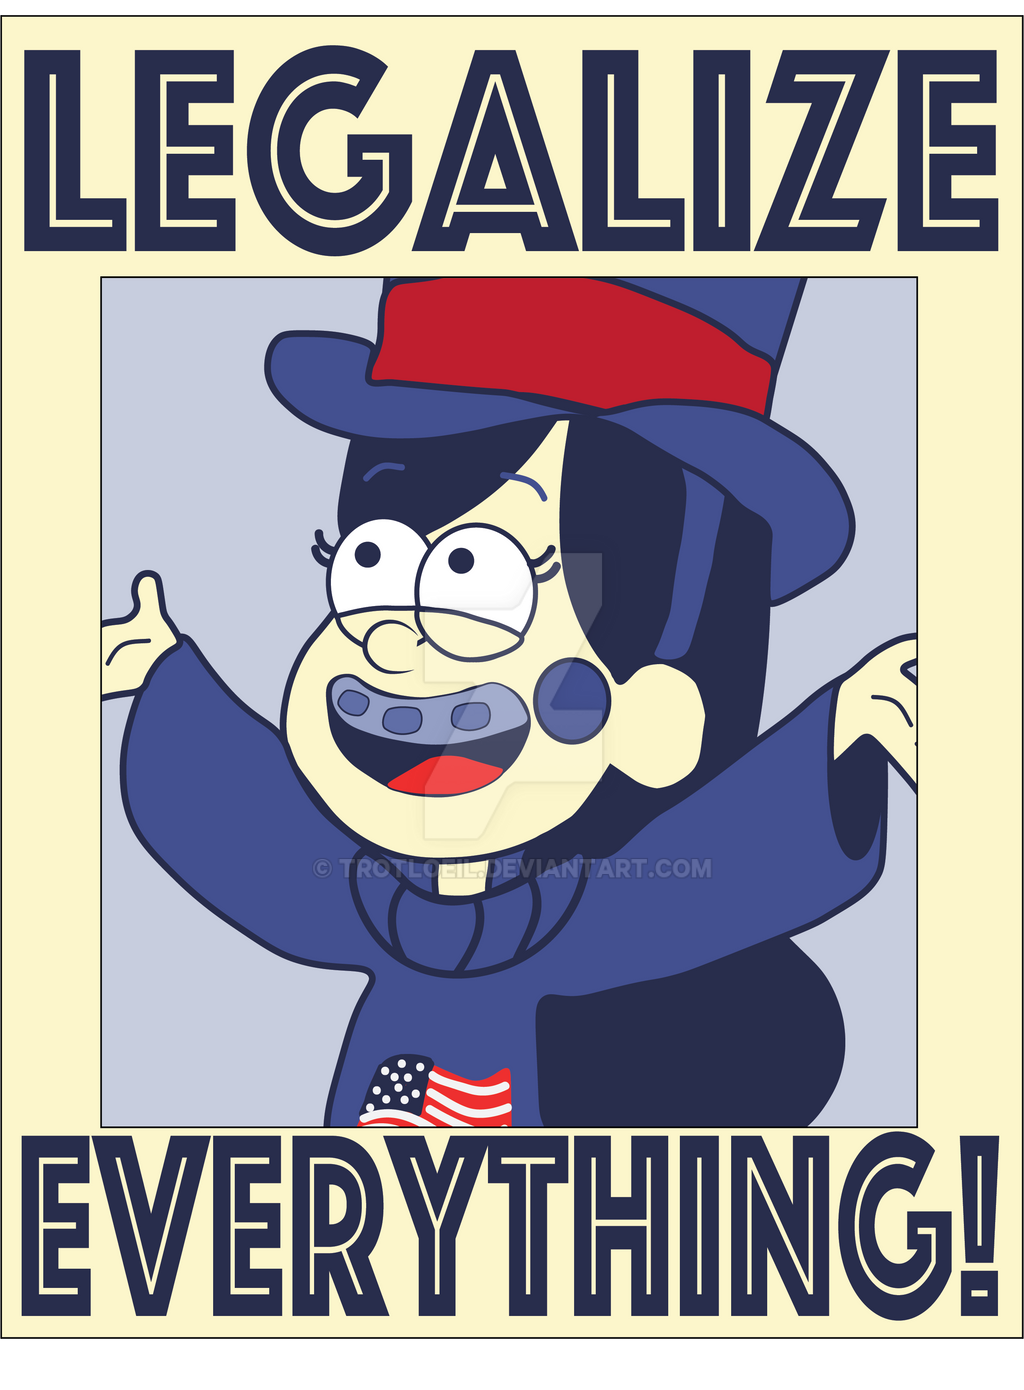 Legalize Everything! by TexacoPokerKitty